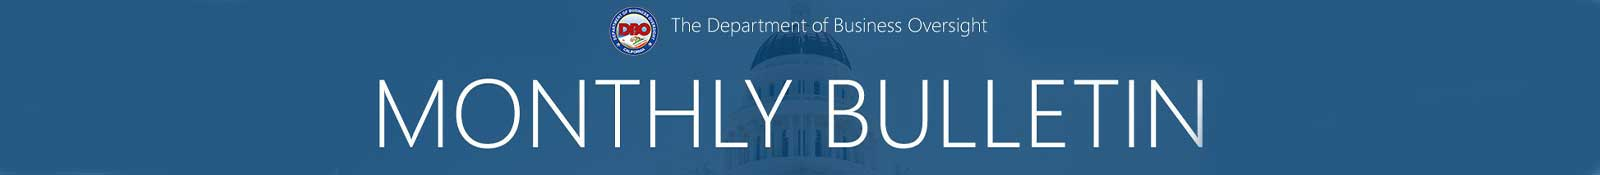 Department of Business Oversight - Monthly Bulletin